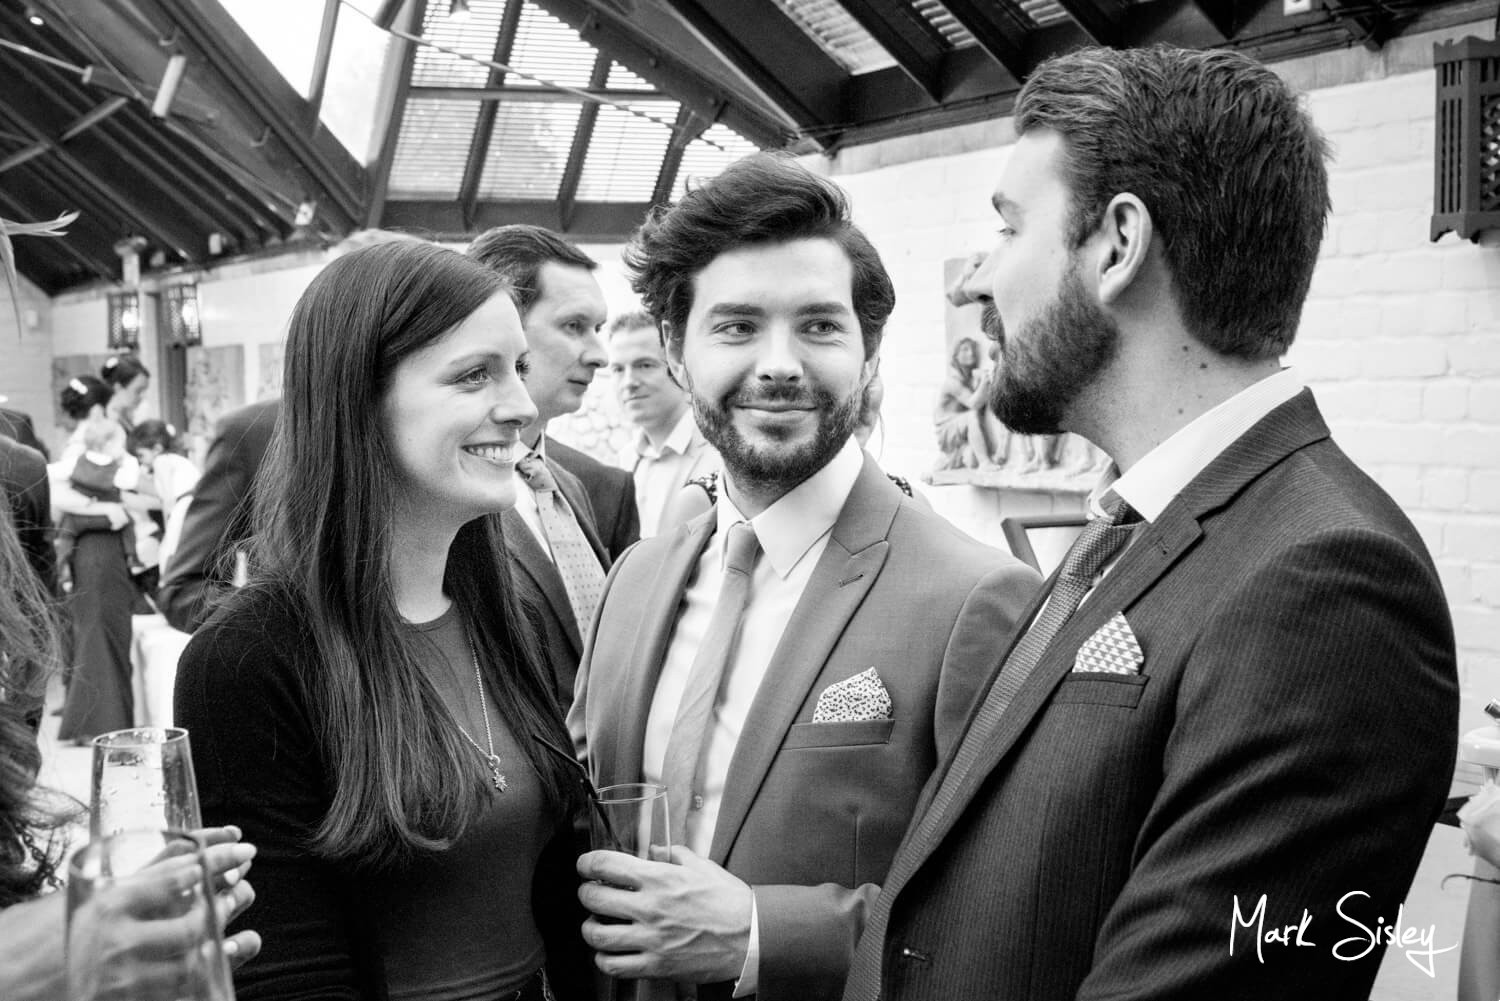 The Dairy Waddesdon Spring wedding guests enjoying the drinks reception